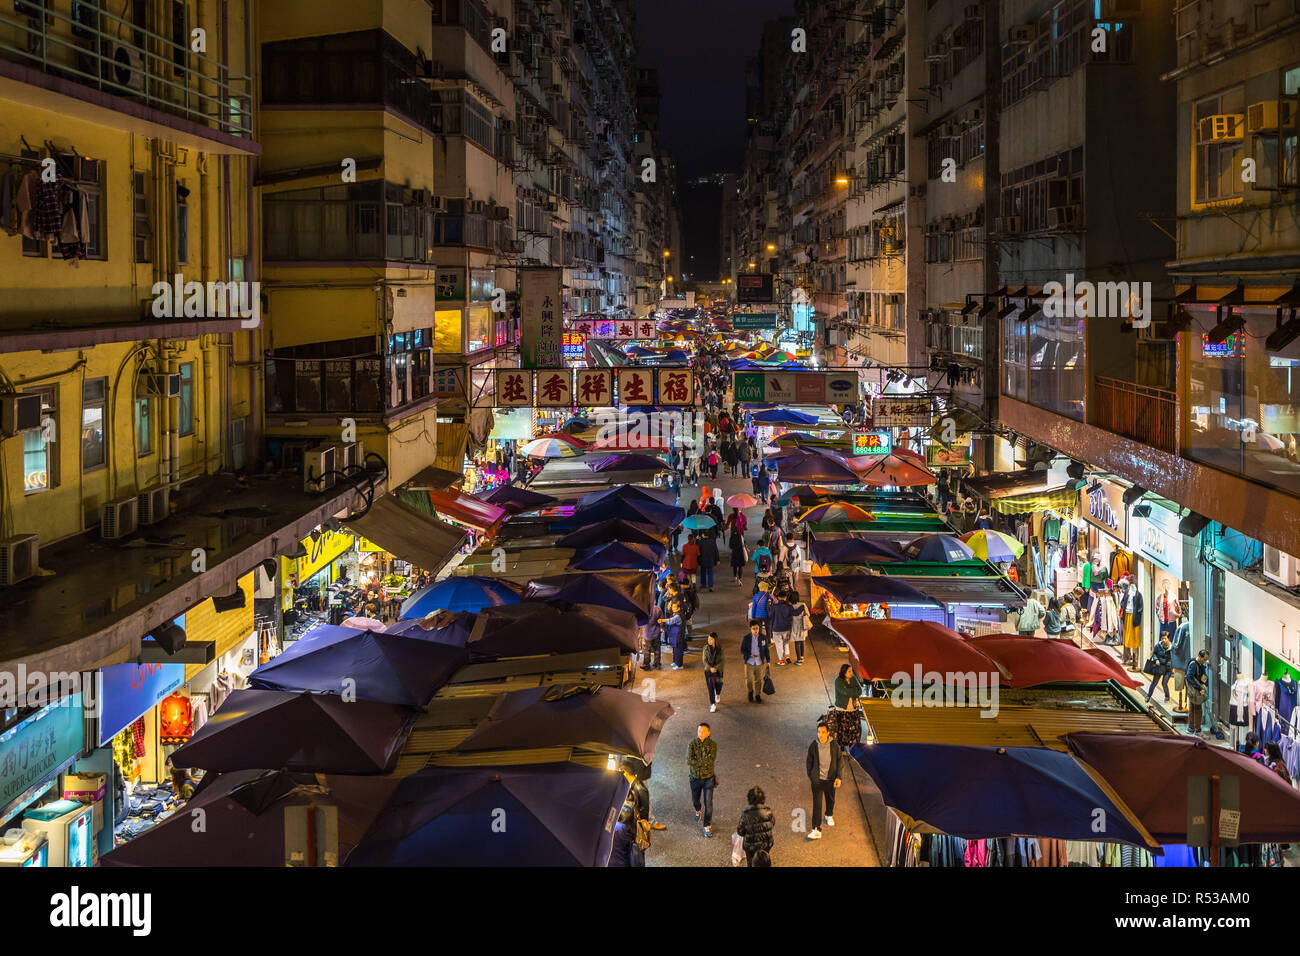 Night view of Fa Yuen street market in Mong Kok. Hong Kong markets are one of the most popular attraction of the city. Hong Kong, Kowloon - Stock Image